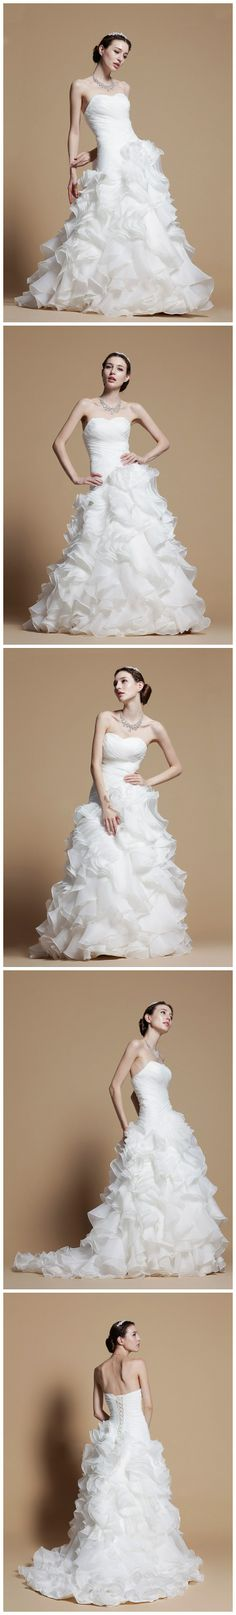 Spring New Arrival Ruffled Organza A-Line With Dropped Waist Wedding Dress